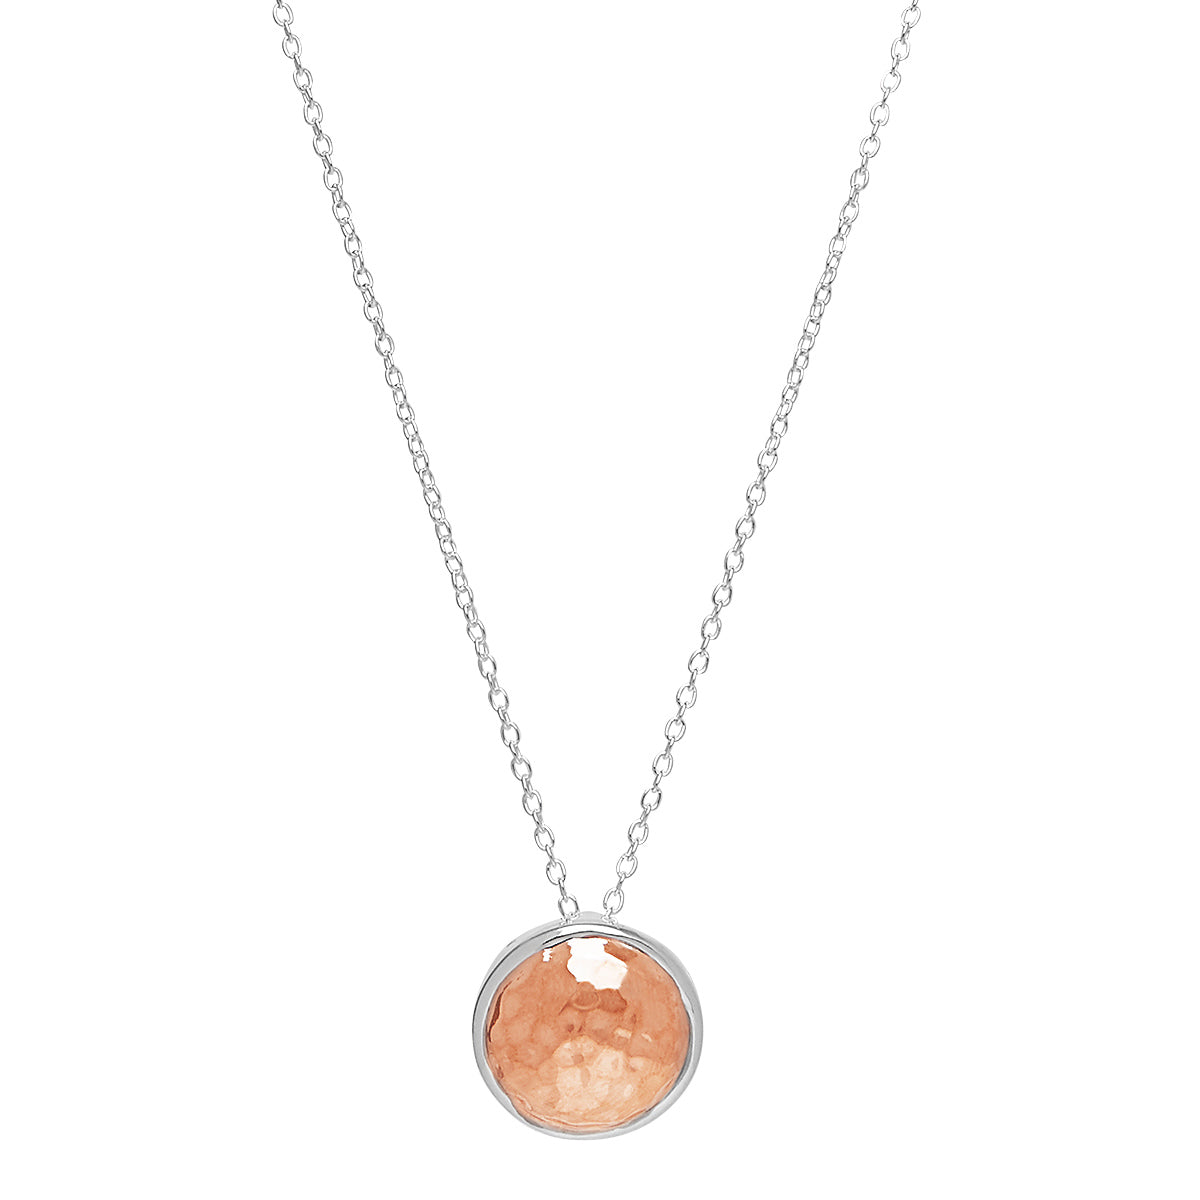 Grand Rosy Glow Necklace